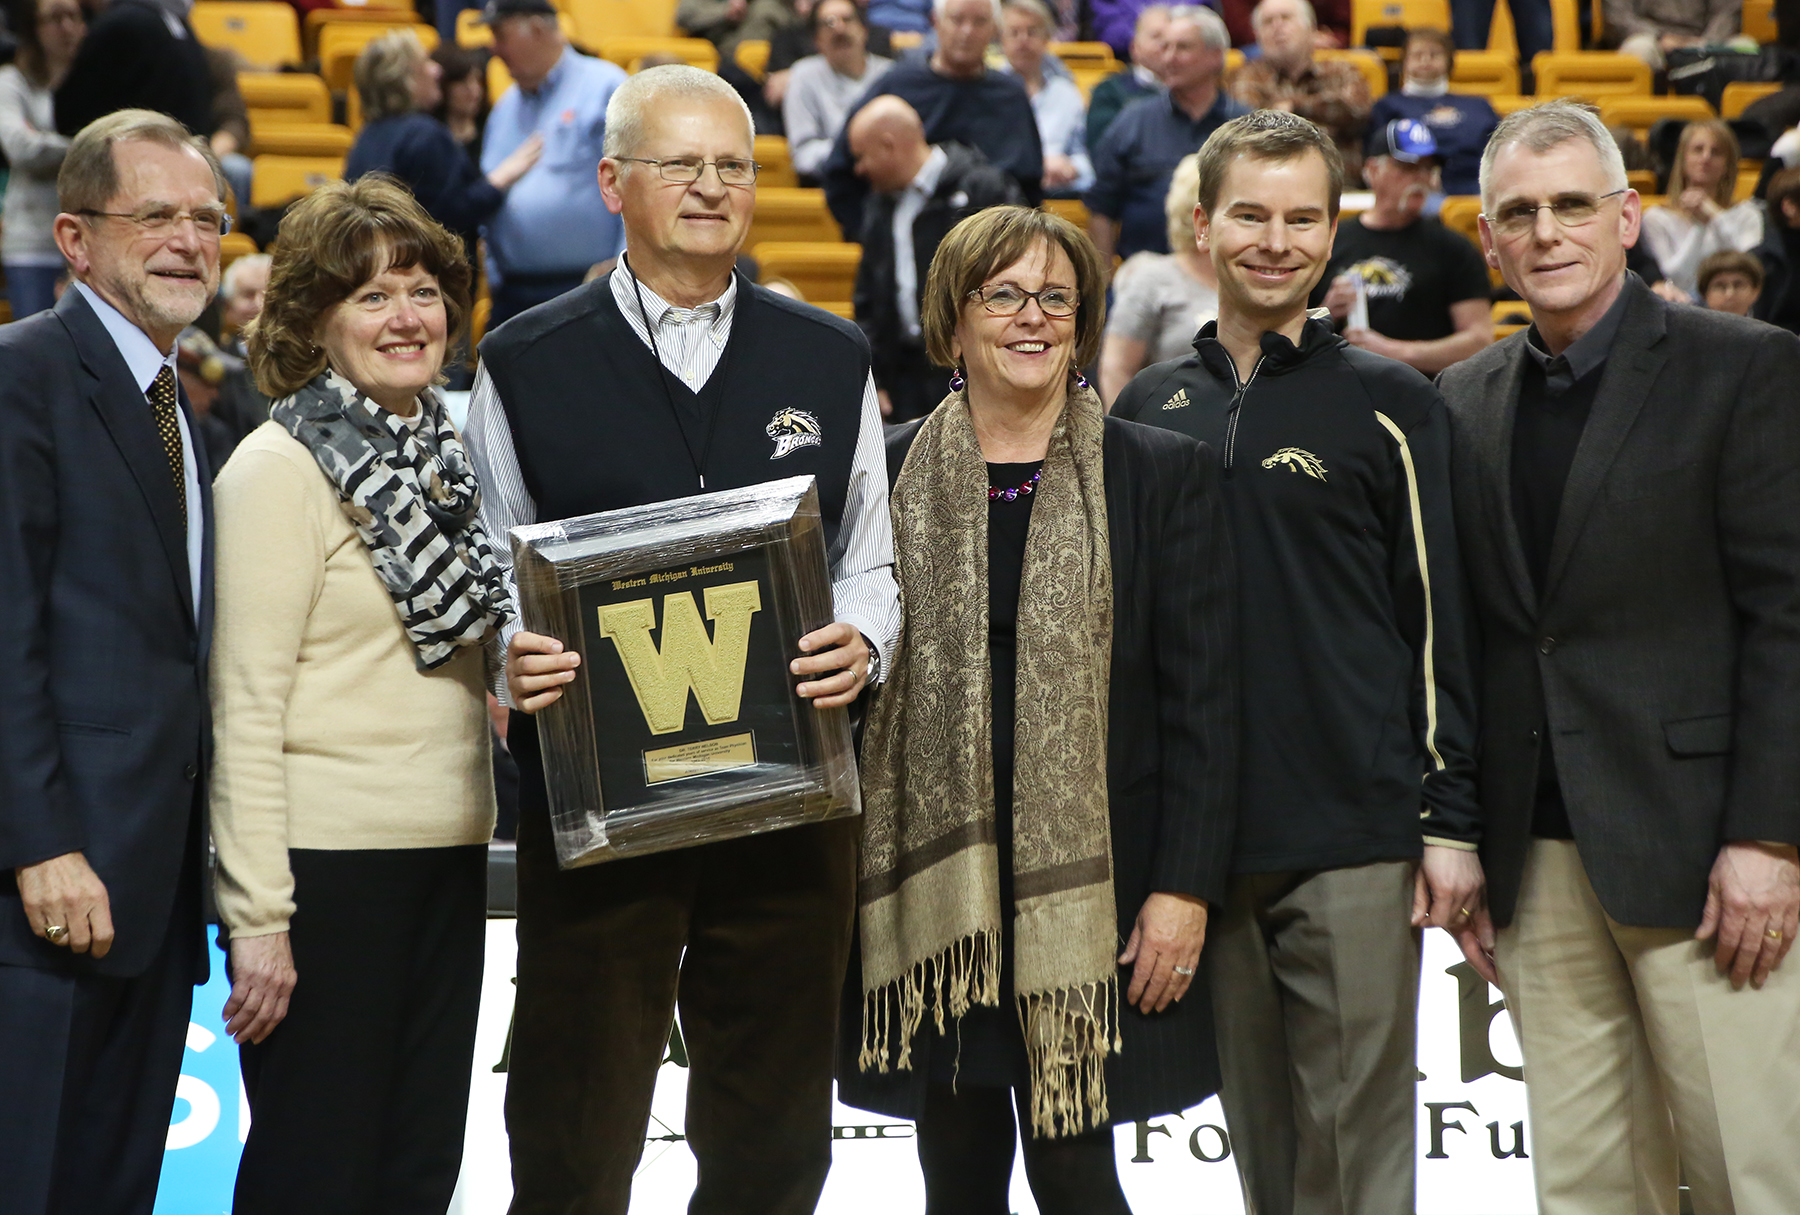 Dr. Terry Nelson being recognized at WMU basketball game